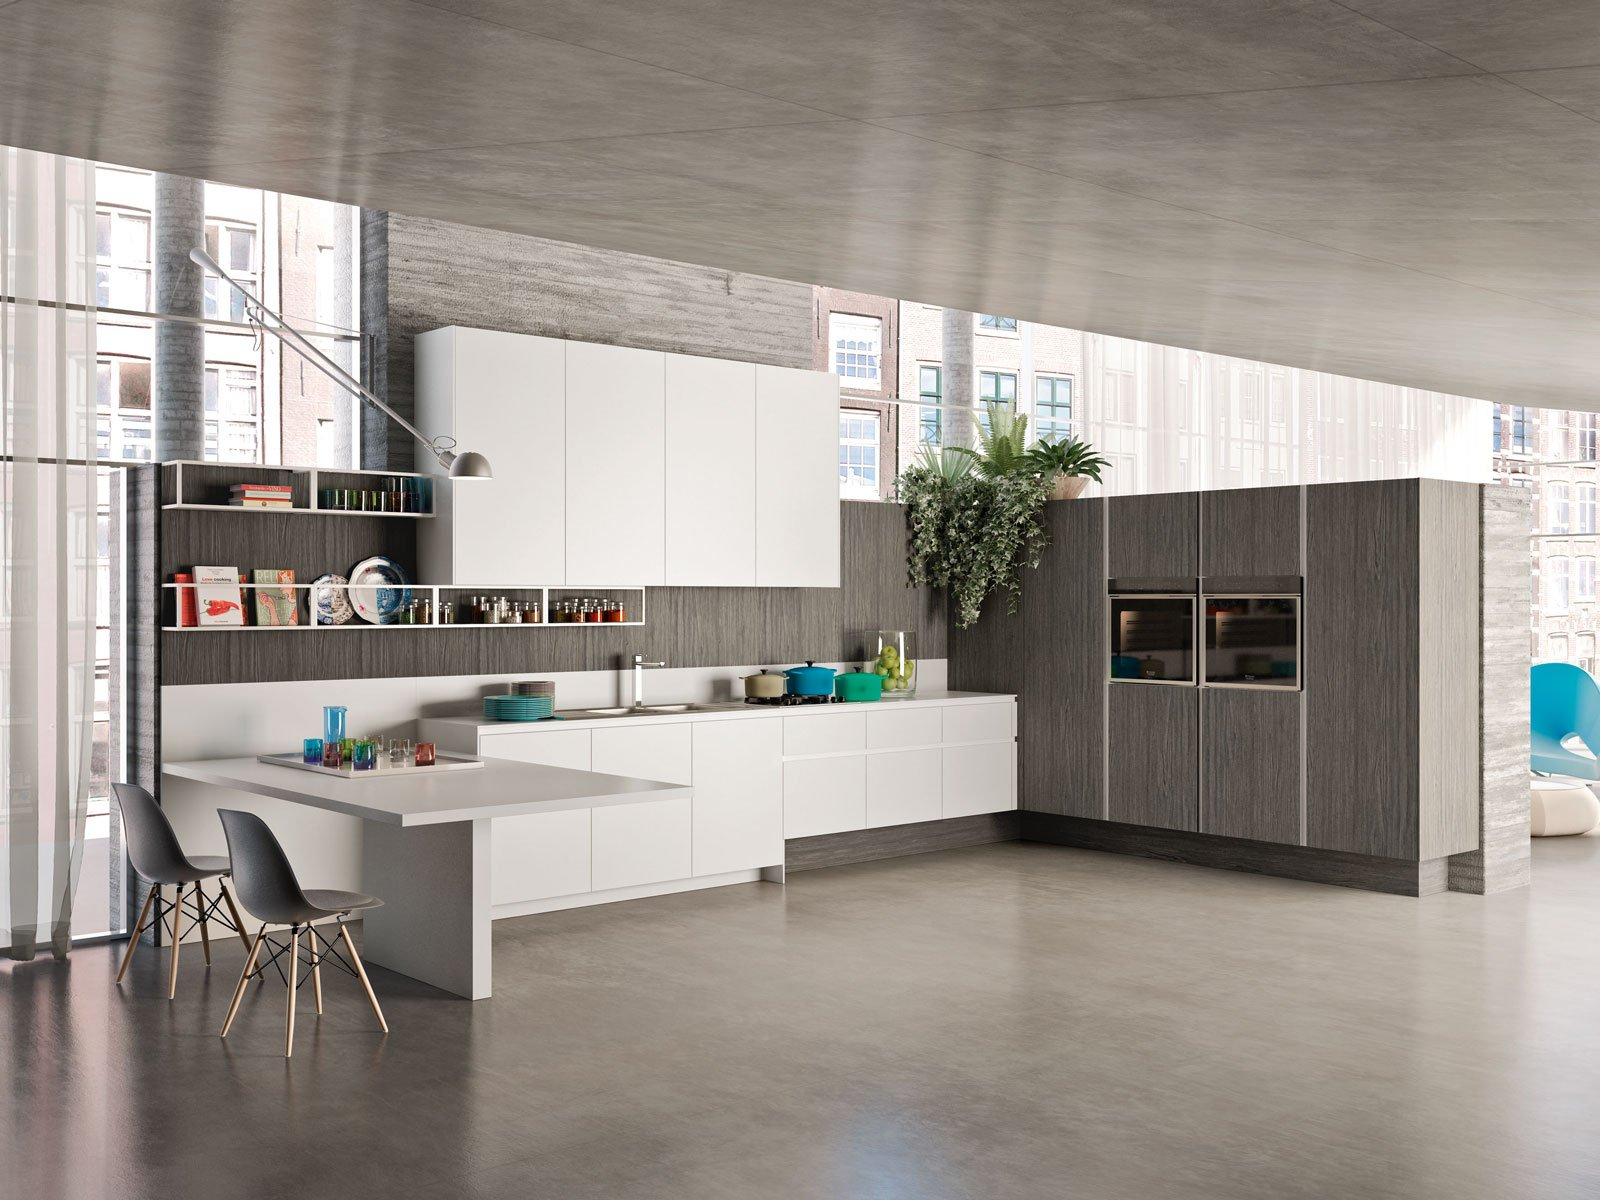 Awesome Modelli Cucine Snaidero Images - acrylicgiftware.us ...